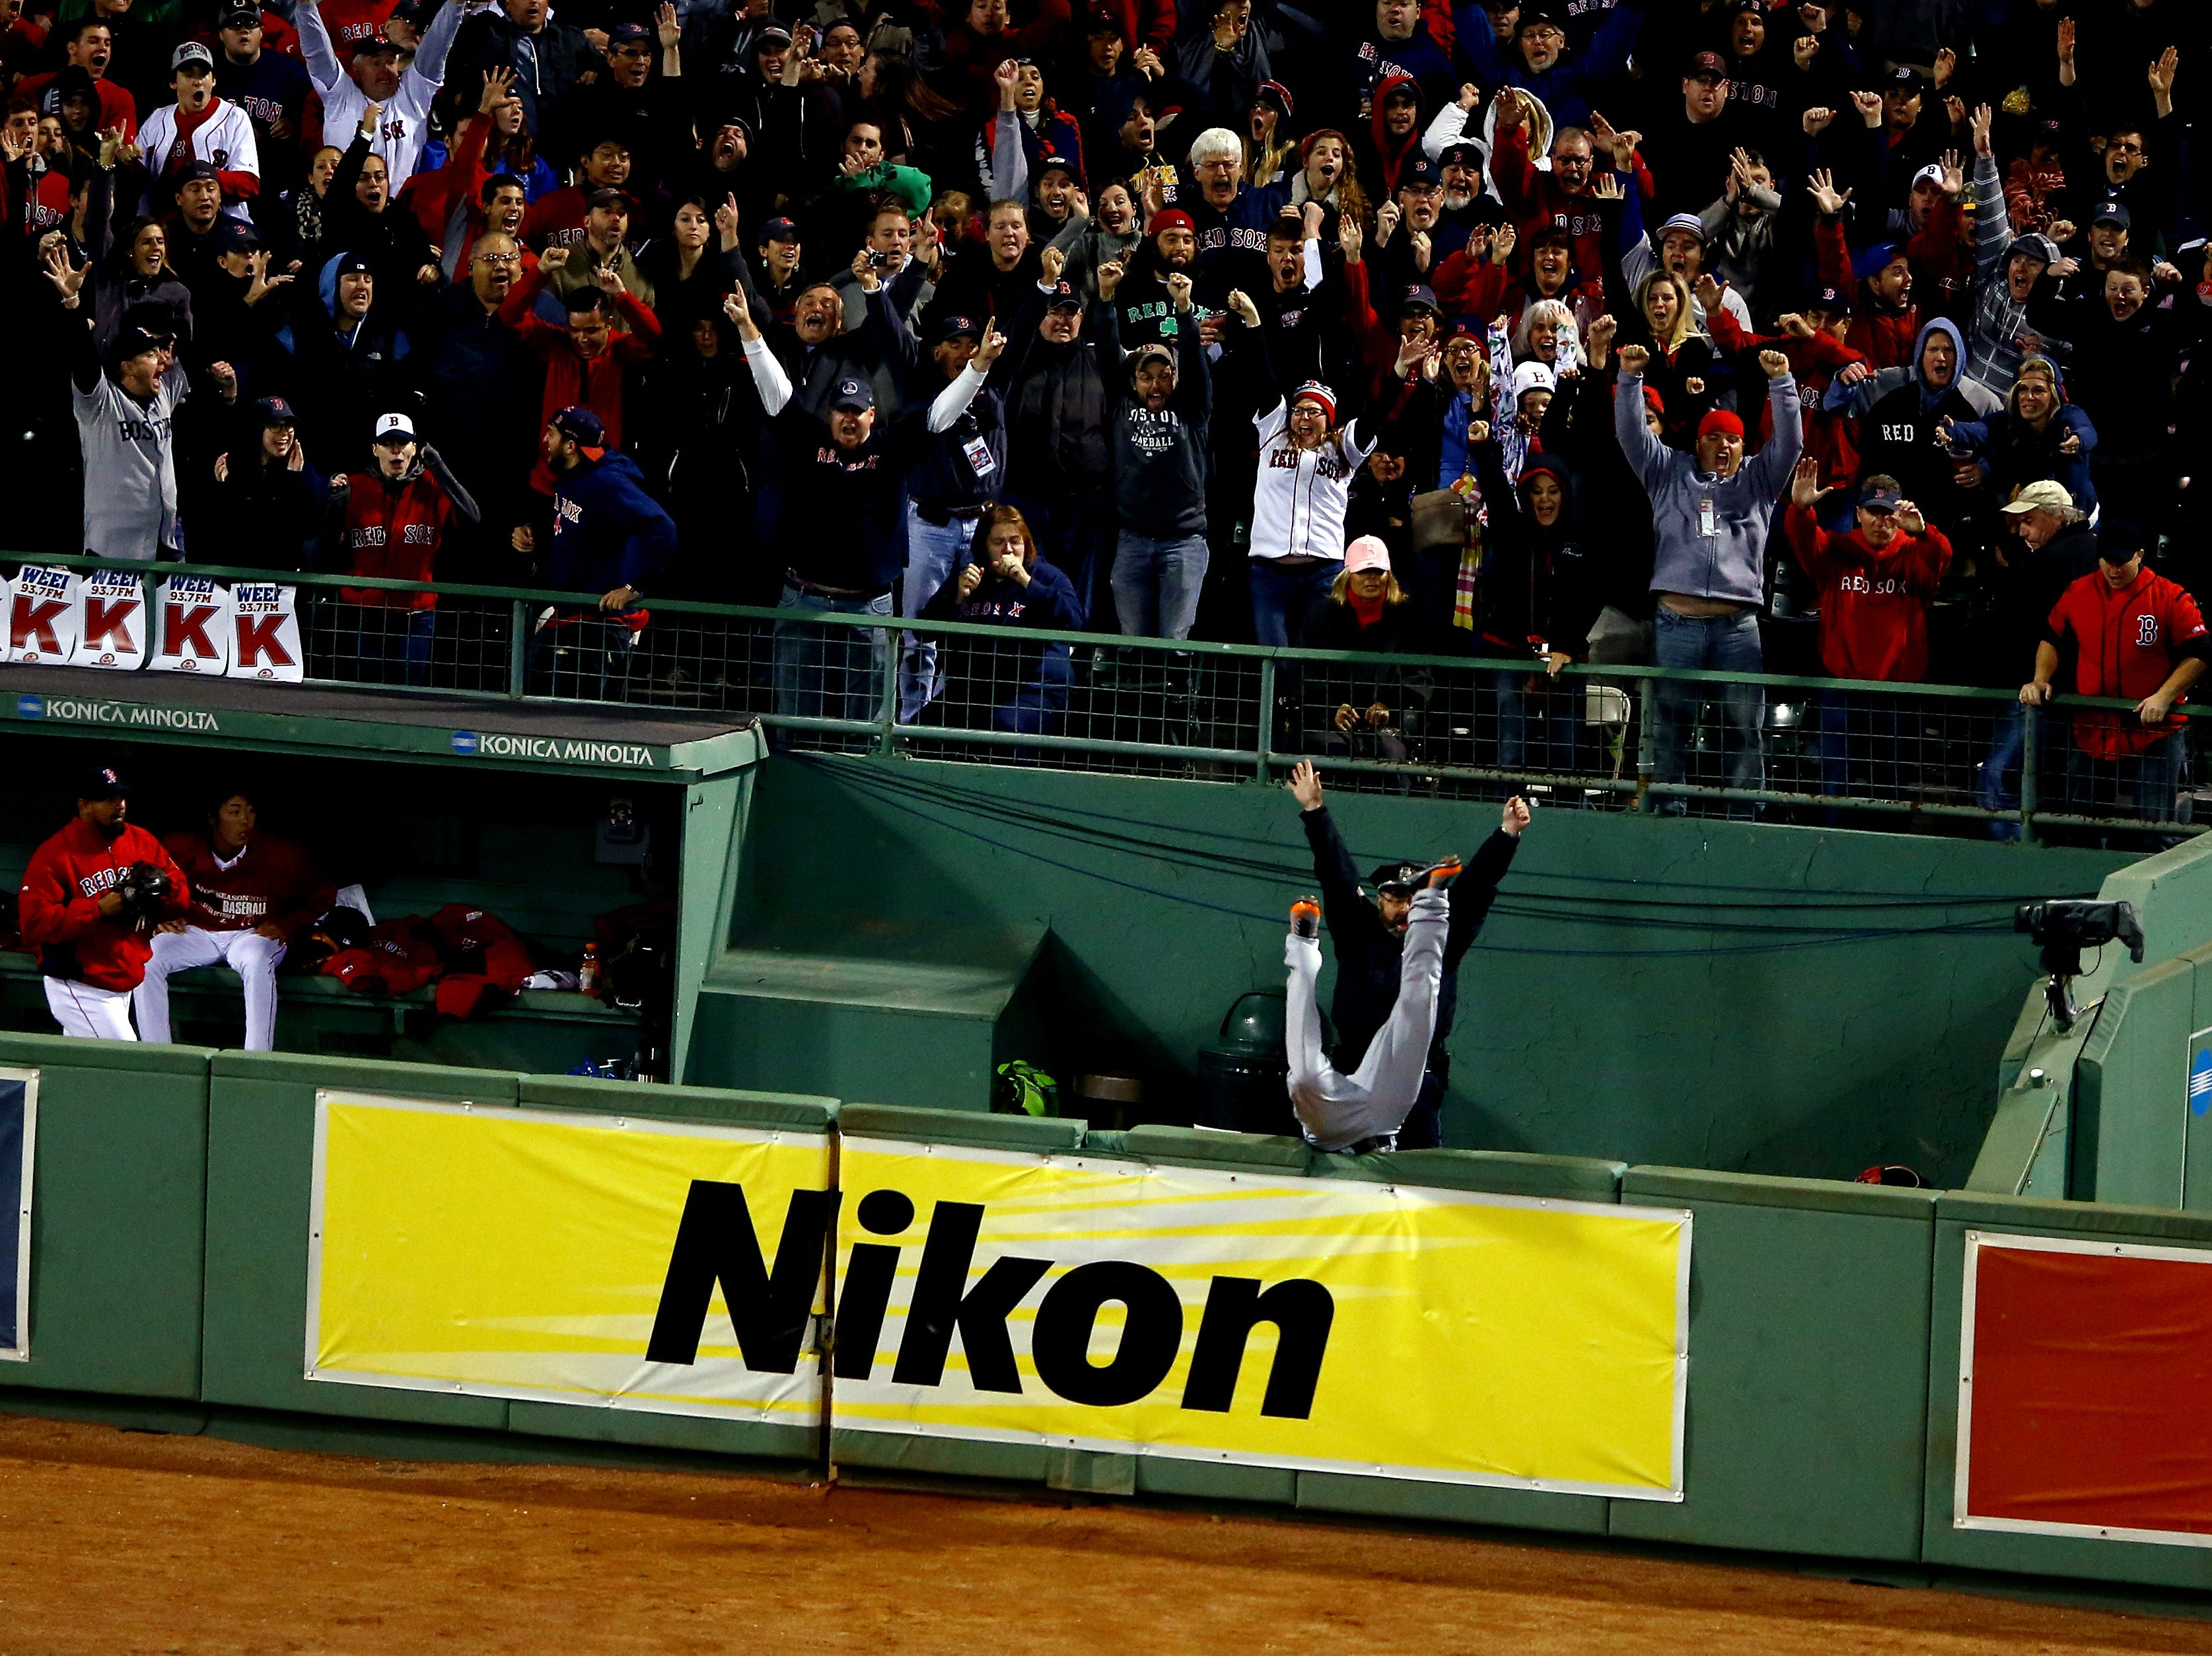 2013 ALCS Game 3: Red Sox designated hitter David Ortiz hit a game-tying grand slam in the eighth inning against the Tigers, sending Torii Hunter into the bullpen trying to make the catch.